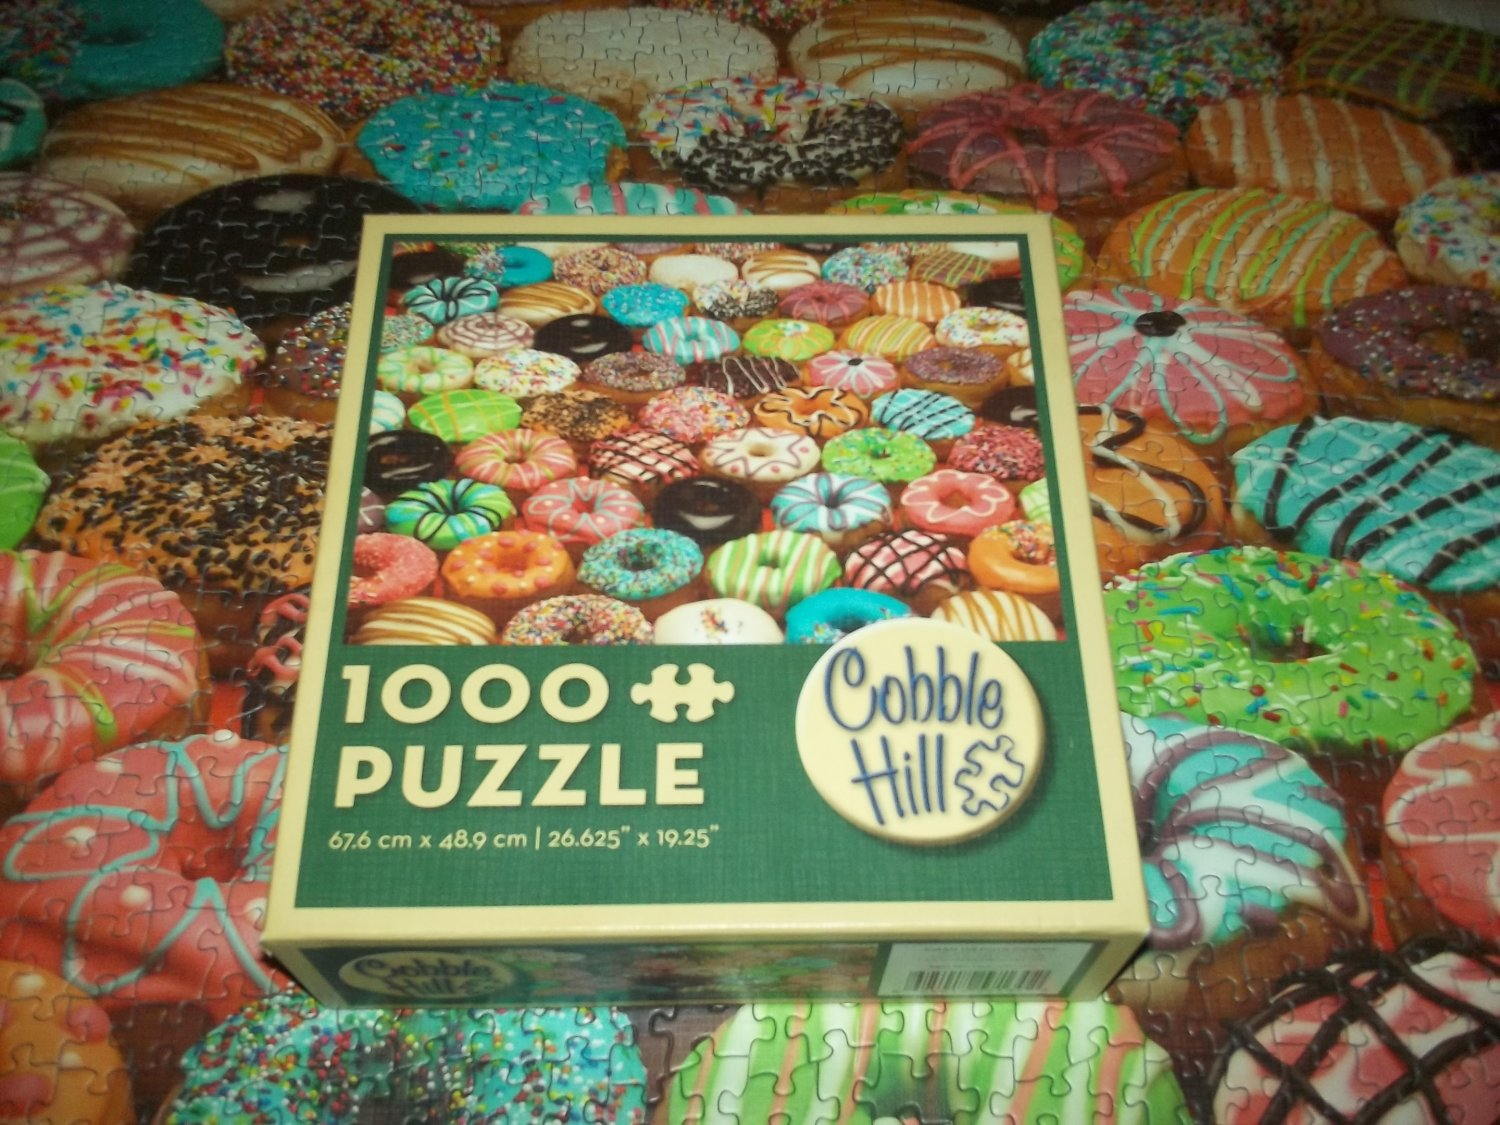 COBBLE HILL Jigsaw Puzzle DOUGHNUTS 1000 PC Chocolate Covered Sprinkles Pink Icing